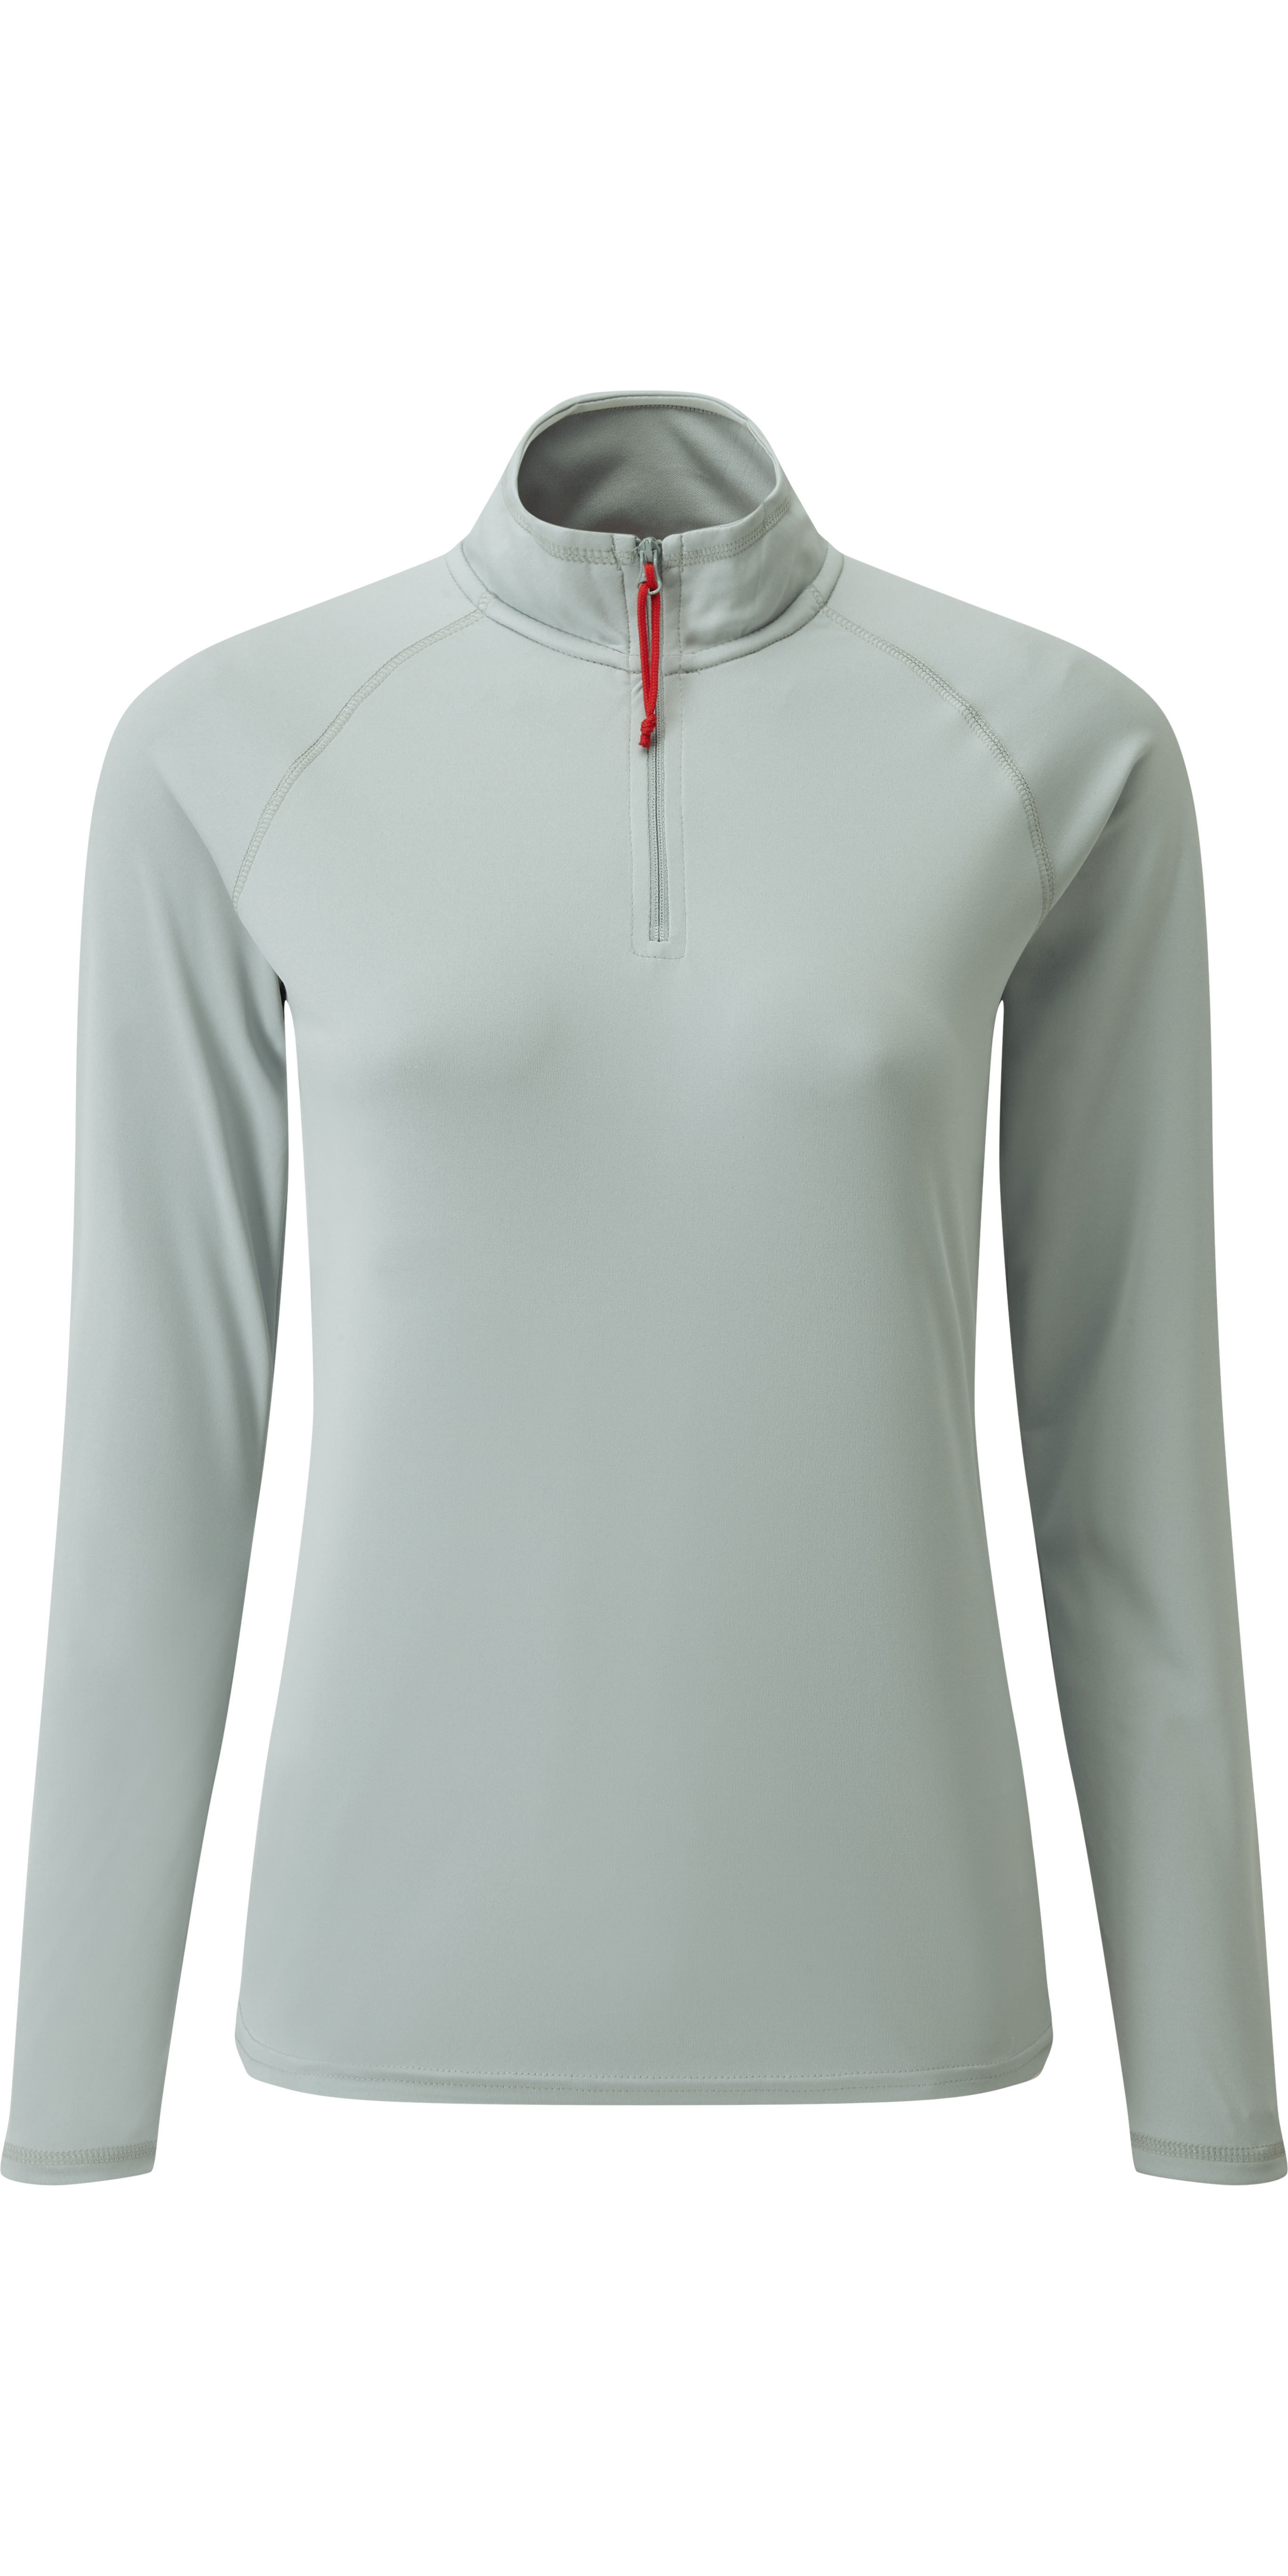 279e20bfe2 2019 Gill Womens Uv Tec Zip Neck Top Grey Uv009w - Sailing Tops & T Shirts  - Shore Wear | Wetsuit Outlet